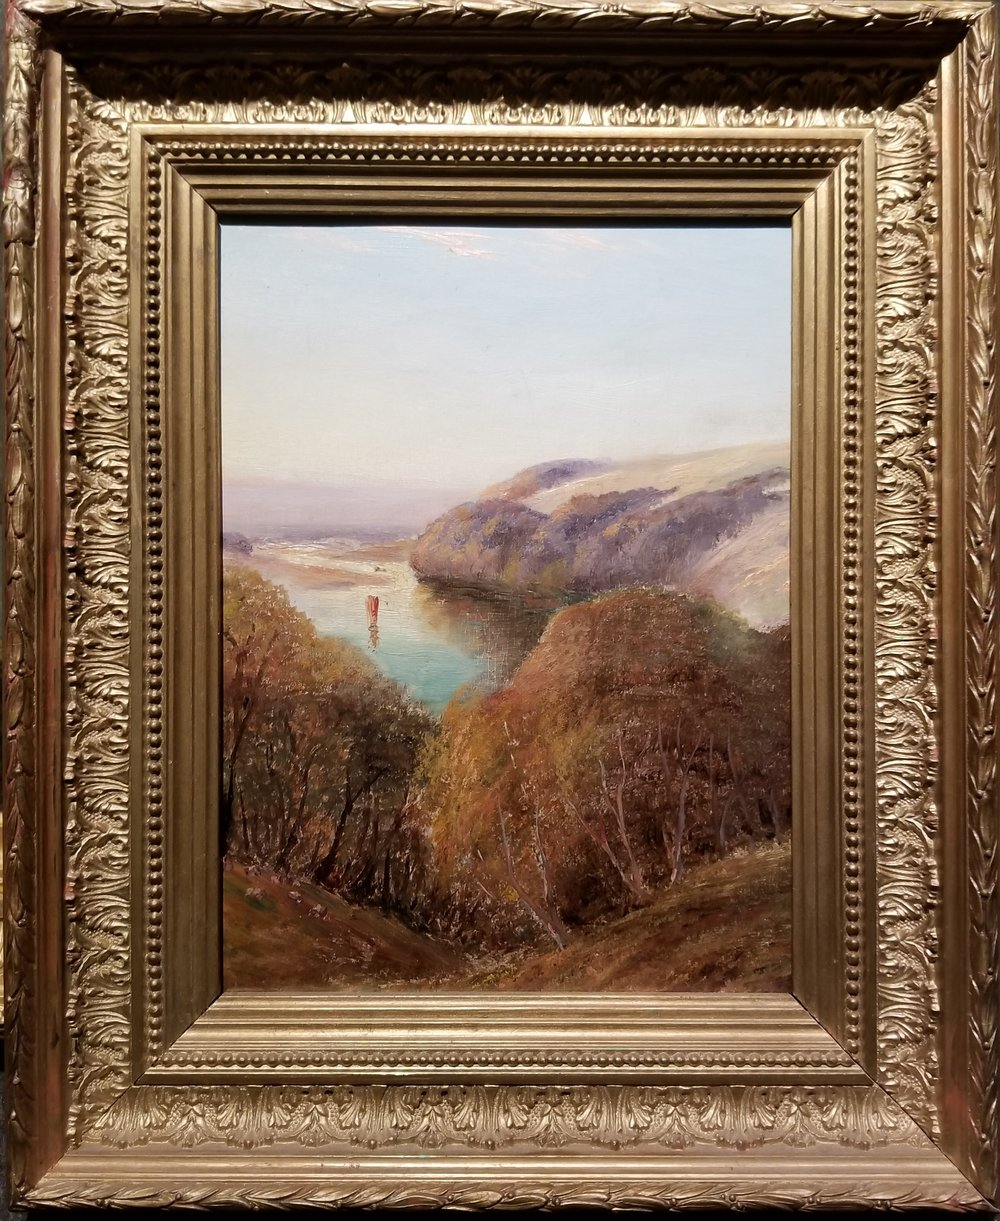 "Antique Hudson River School Painting, Unsigned / Antique Frame  9 3/4"" x 7 1/2"" / 13 3/4"" x 11 1/2"" Overall  $1,500"